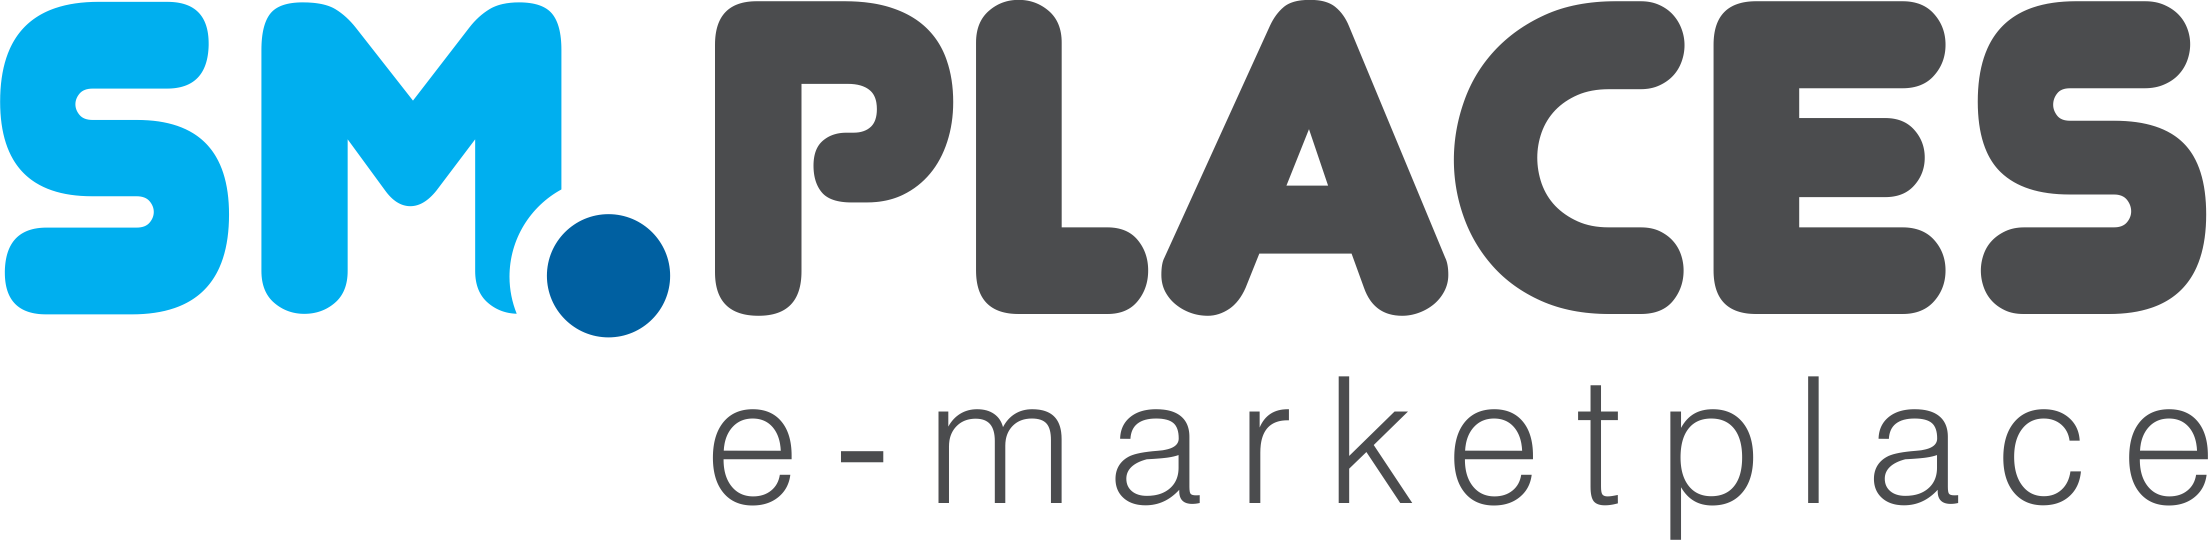 Plataforma de marketplace Smplaces